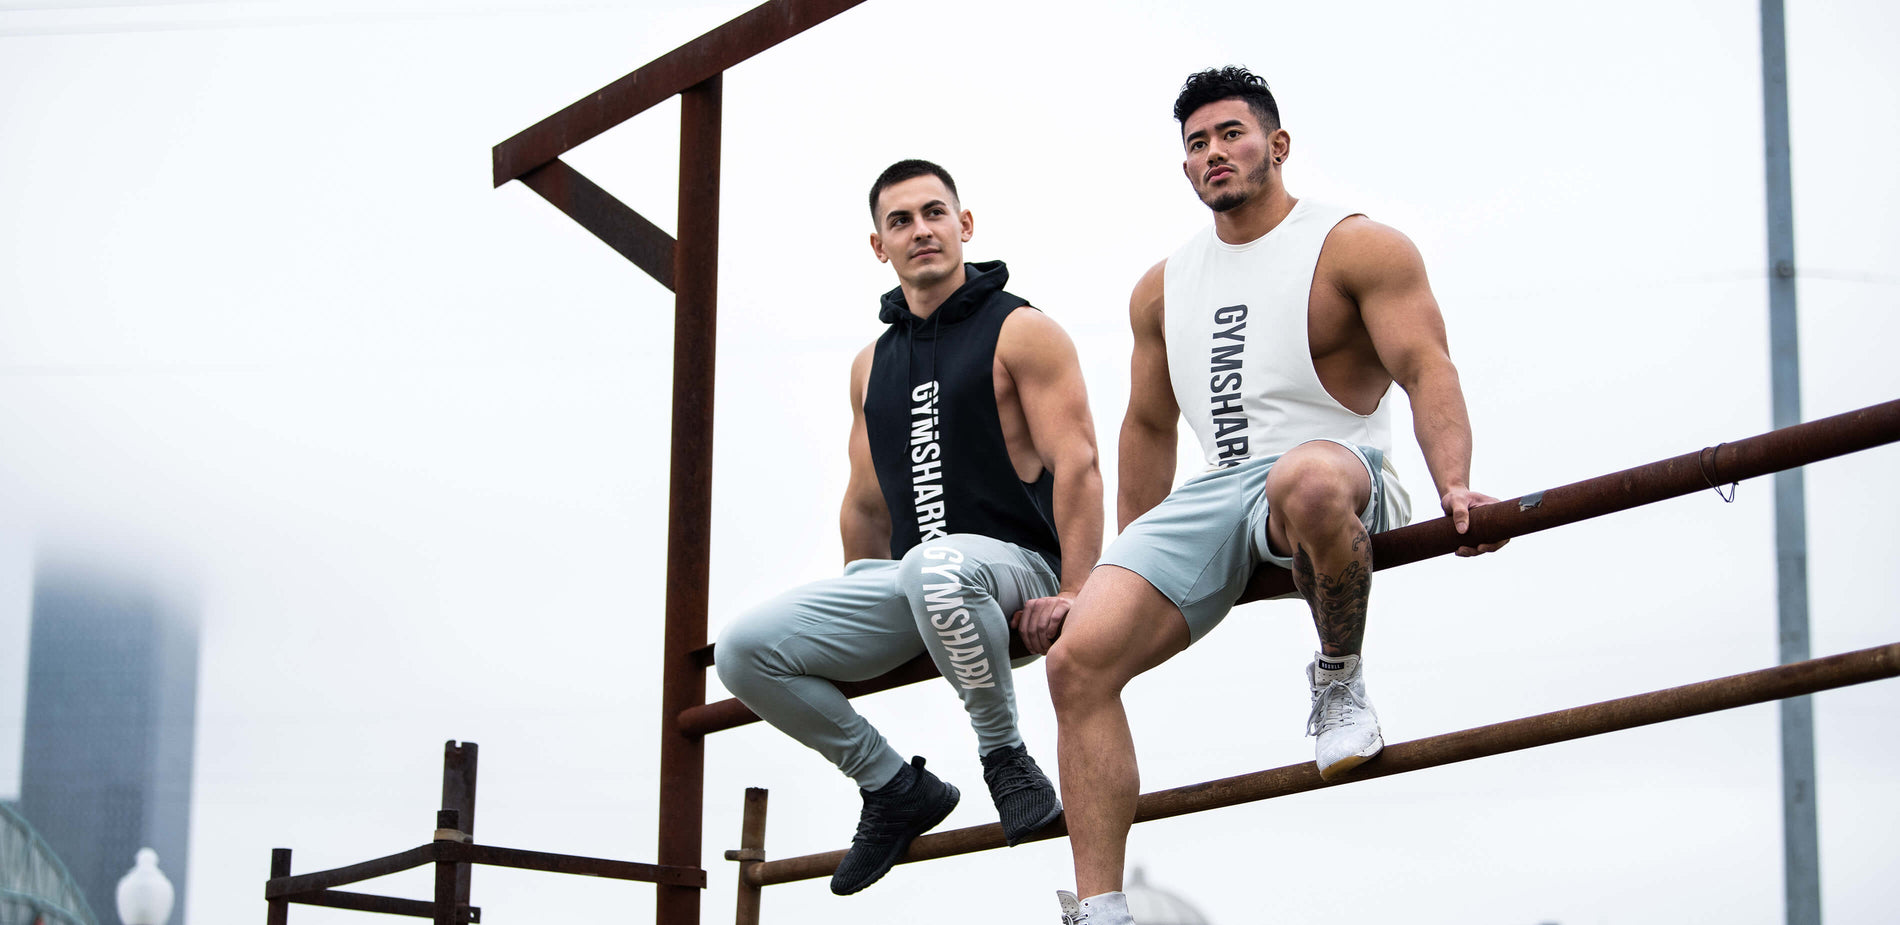 Two Gymshark athletes sitting on industrial poling outside, modelling the new maximize range. The bold Gymshark text stands out in the white cold theme picture.